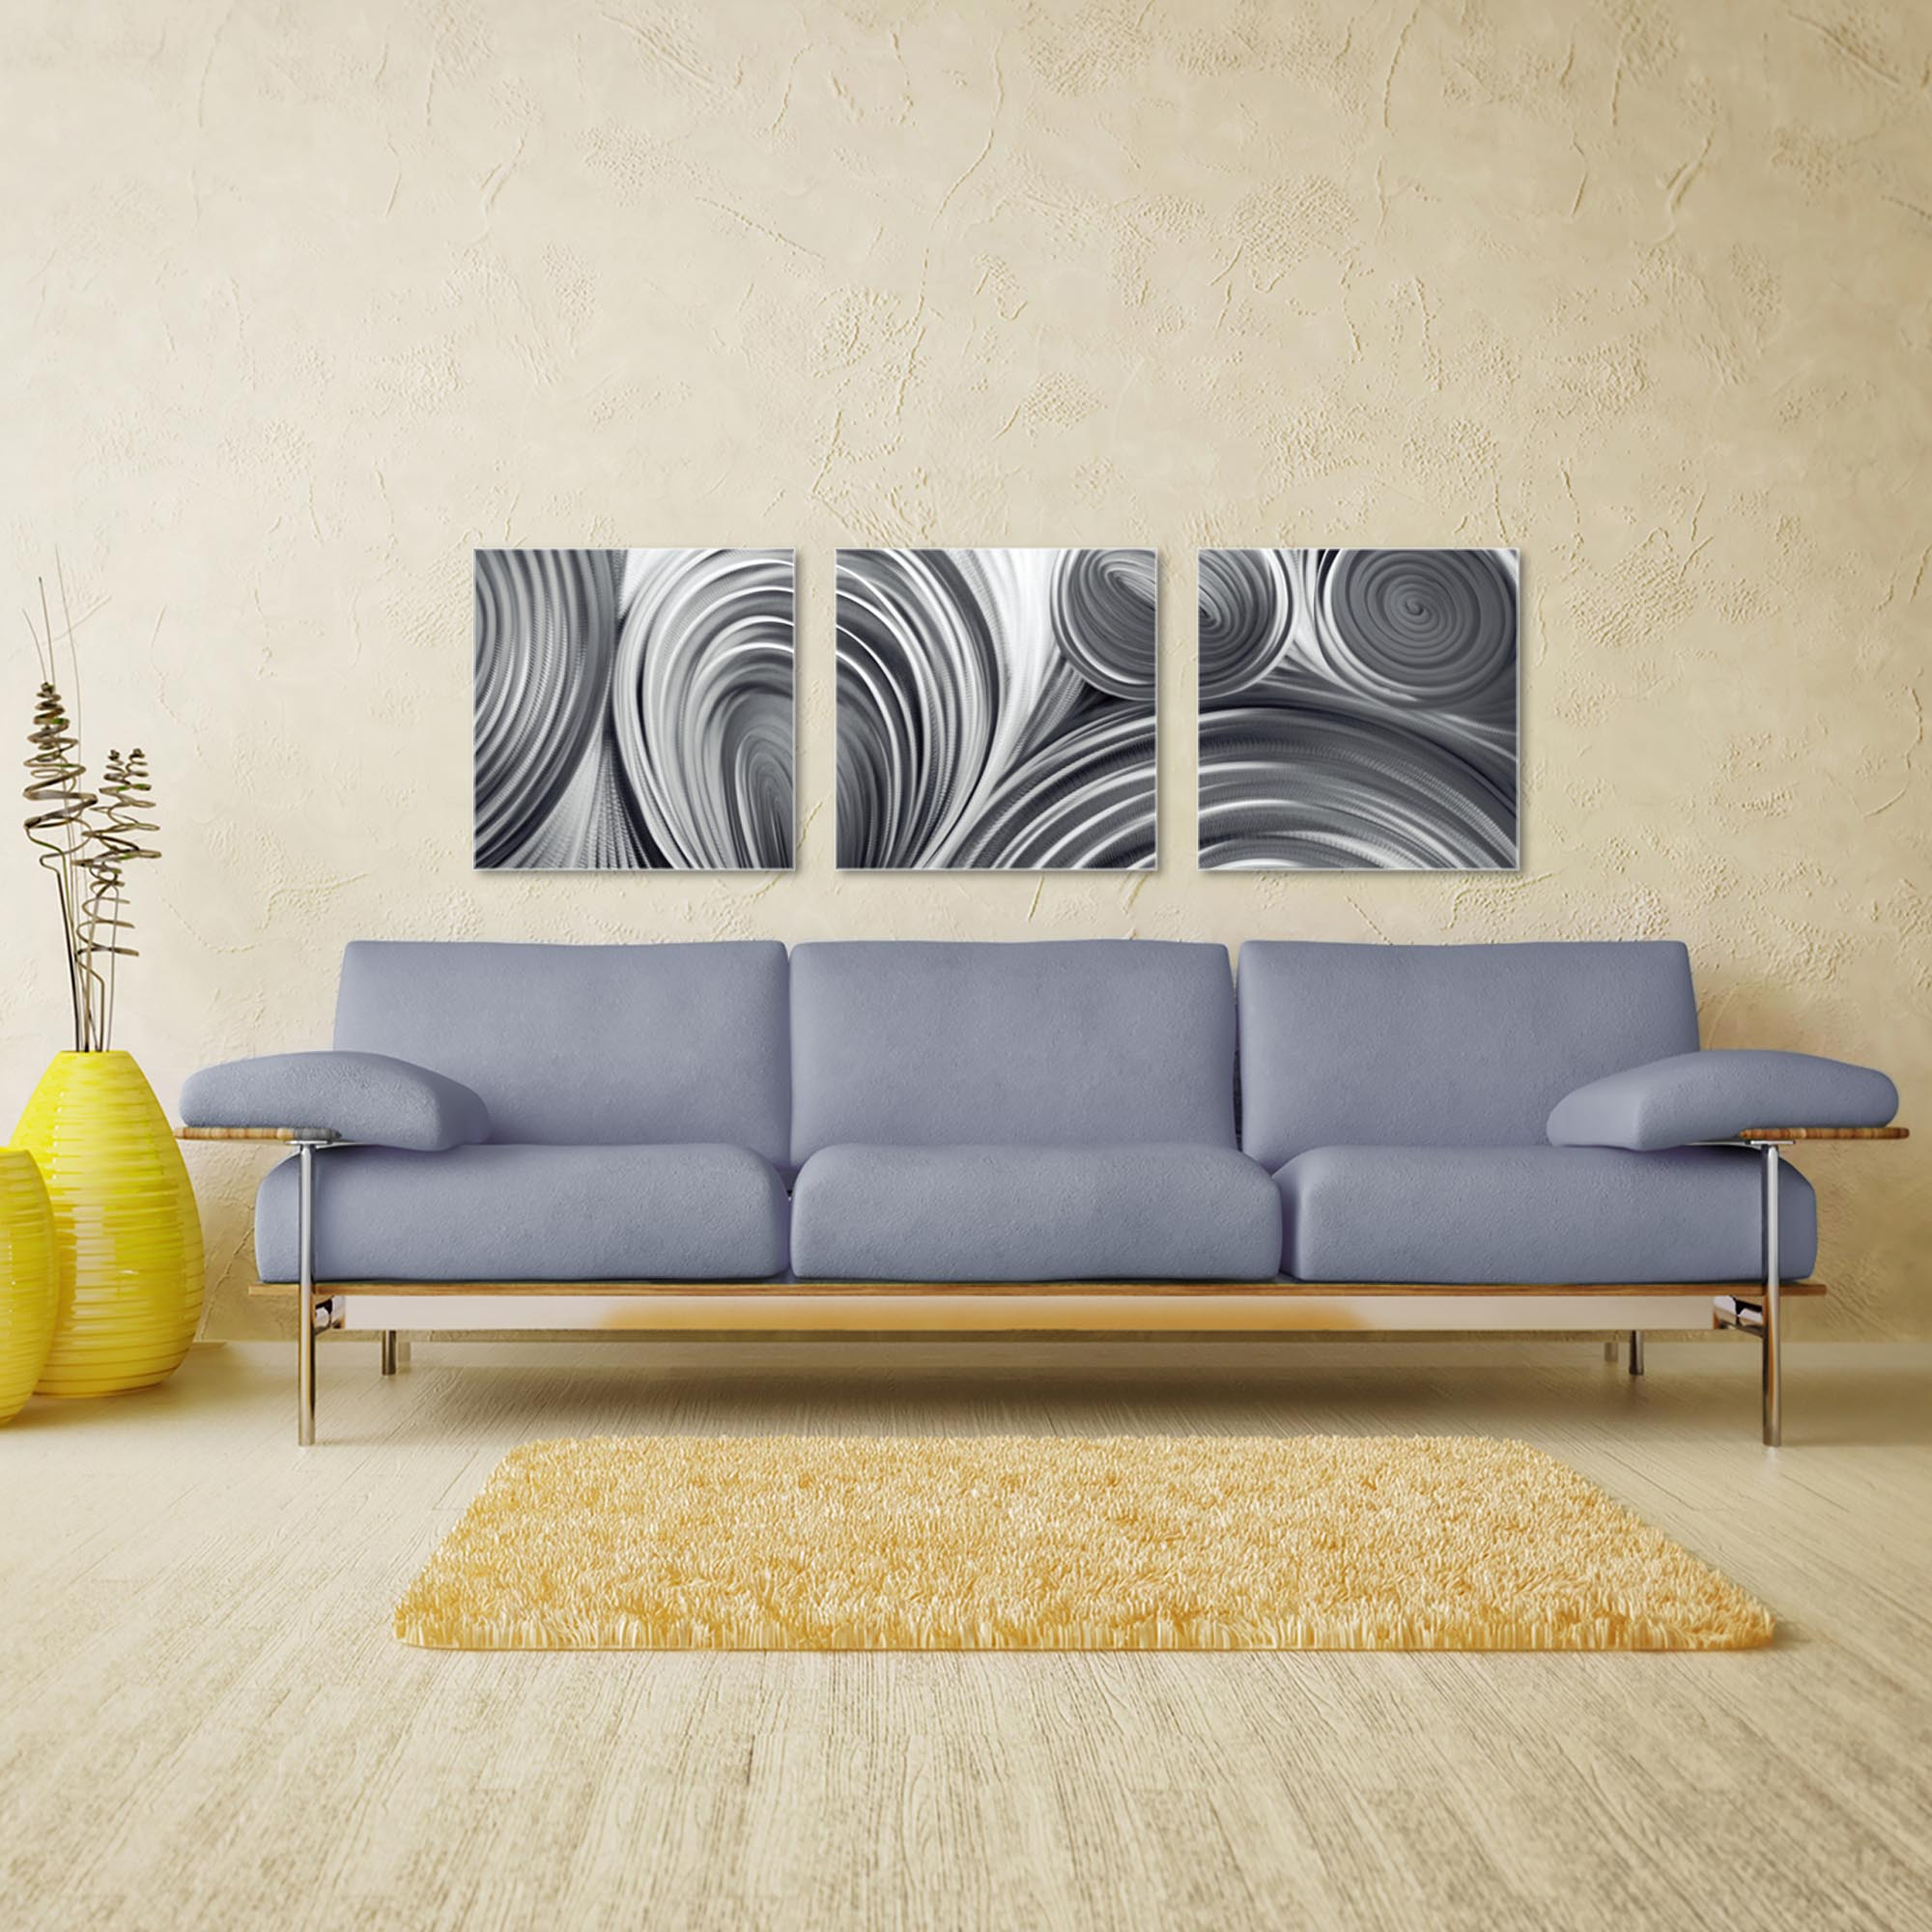 Conduction Triptych Large 70x22in. Metal or Acrylic Contemporary Decor - Image 3